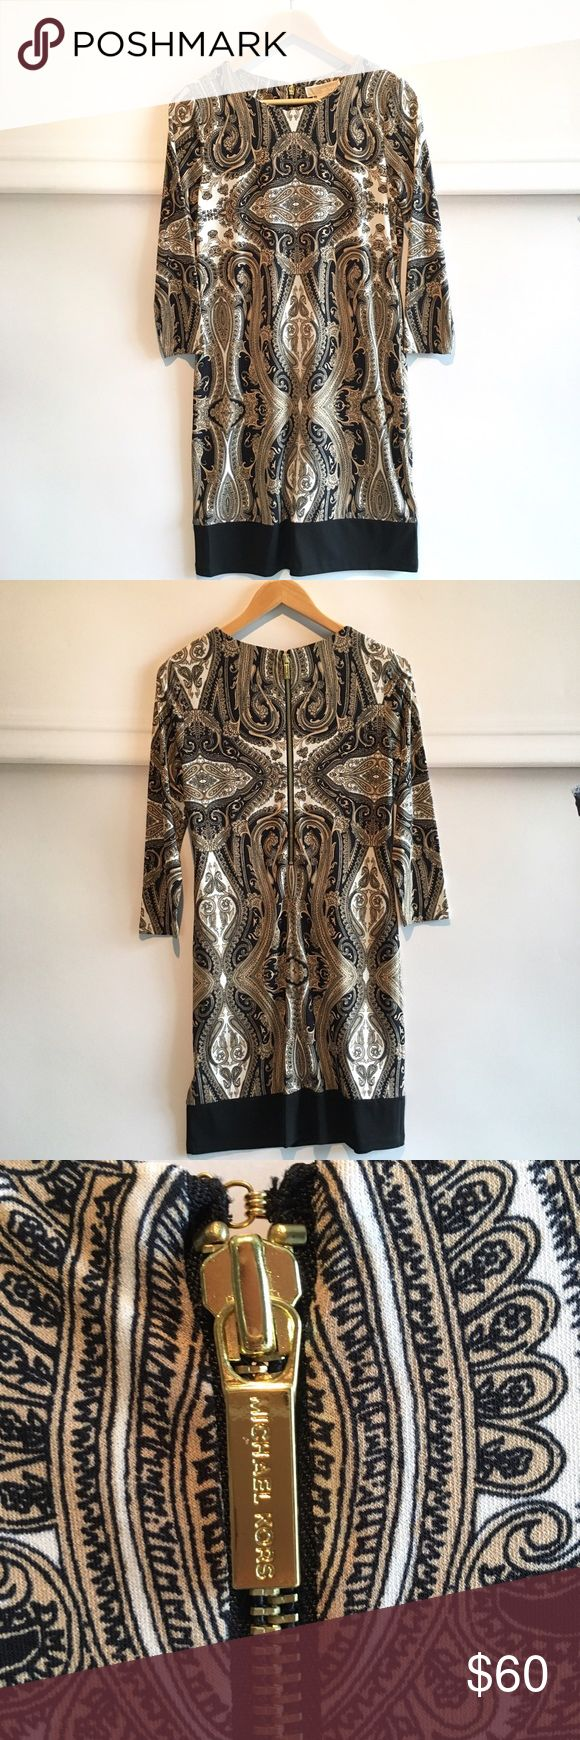 """Micheal Micheal Kors toffee print dress NWT Flat lay chest 17"""", shoulders 13.75"""", sleeves 18.5"""", length 35.5"""". NWT. Gorgeous printed dress in toffee, black, and cream. Perfect for a wedding or a night out! MICHAEL Michael Kors Dresses Midi"""